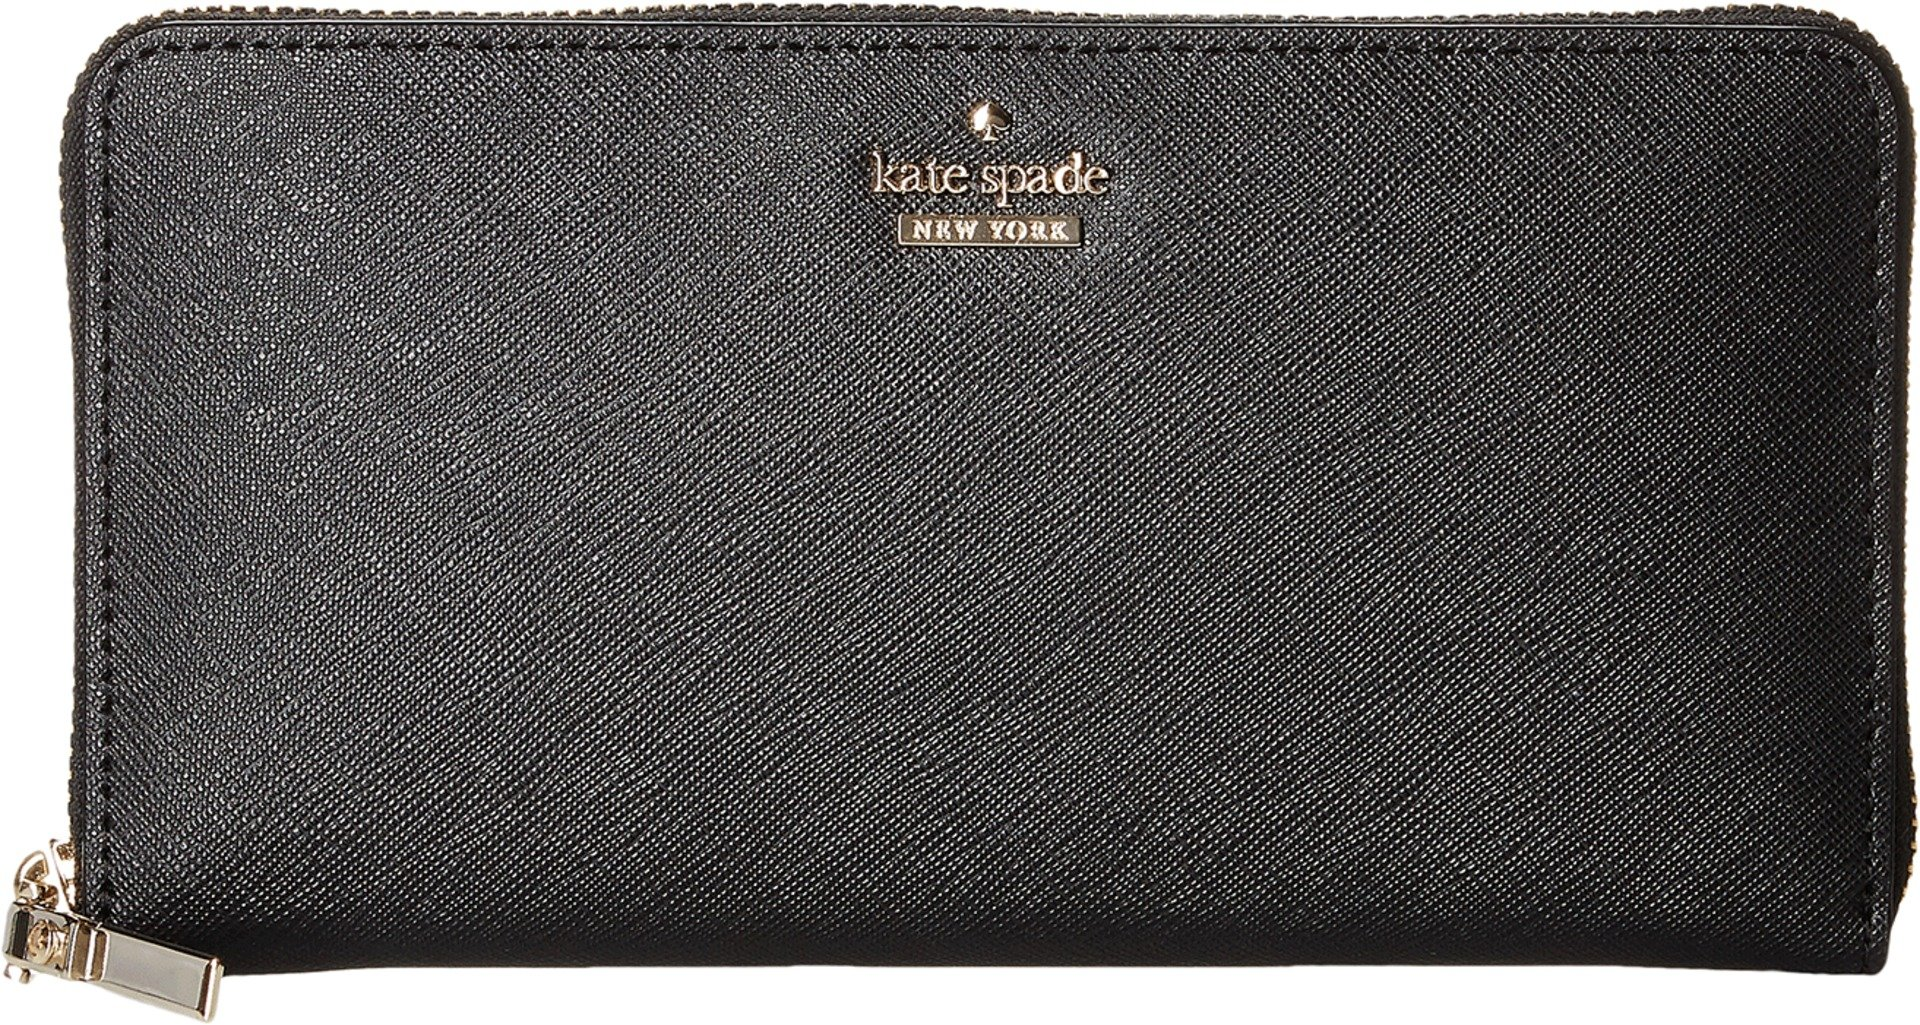 kate spade new york Cameron Street Lacey, Black by Kate Spade New York